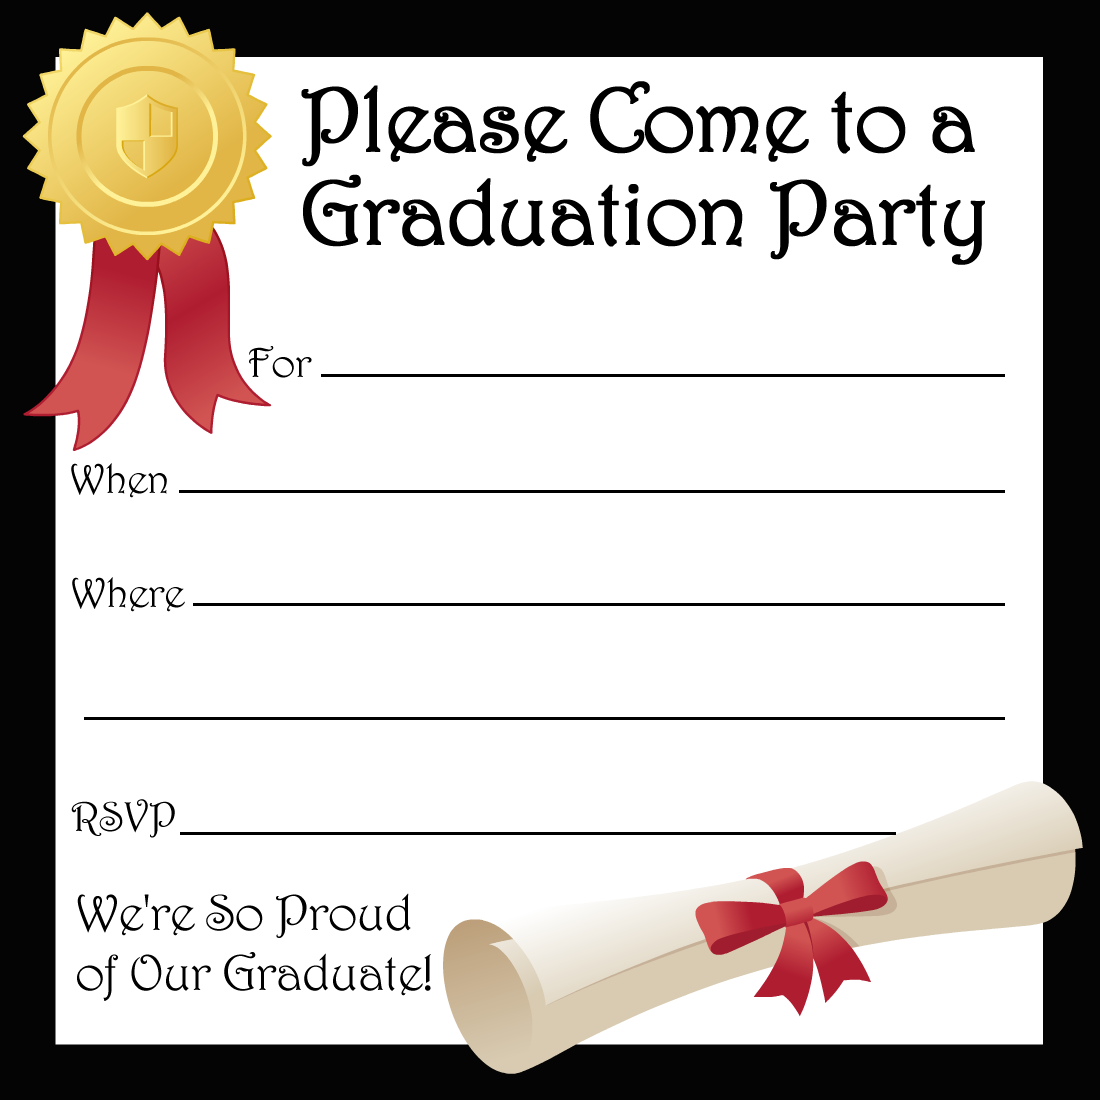 Invitations For Graduation Party is the best ideas you have to choose for invitation example